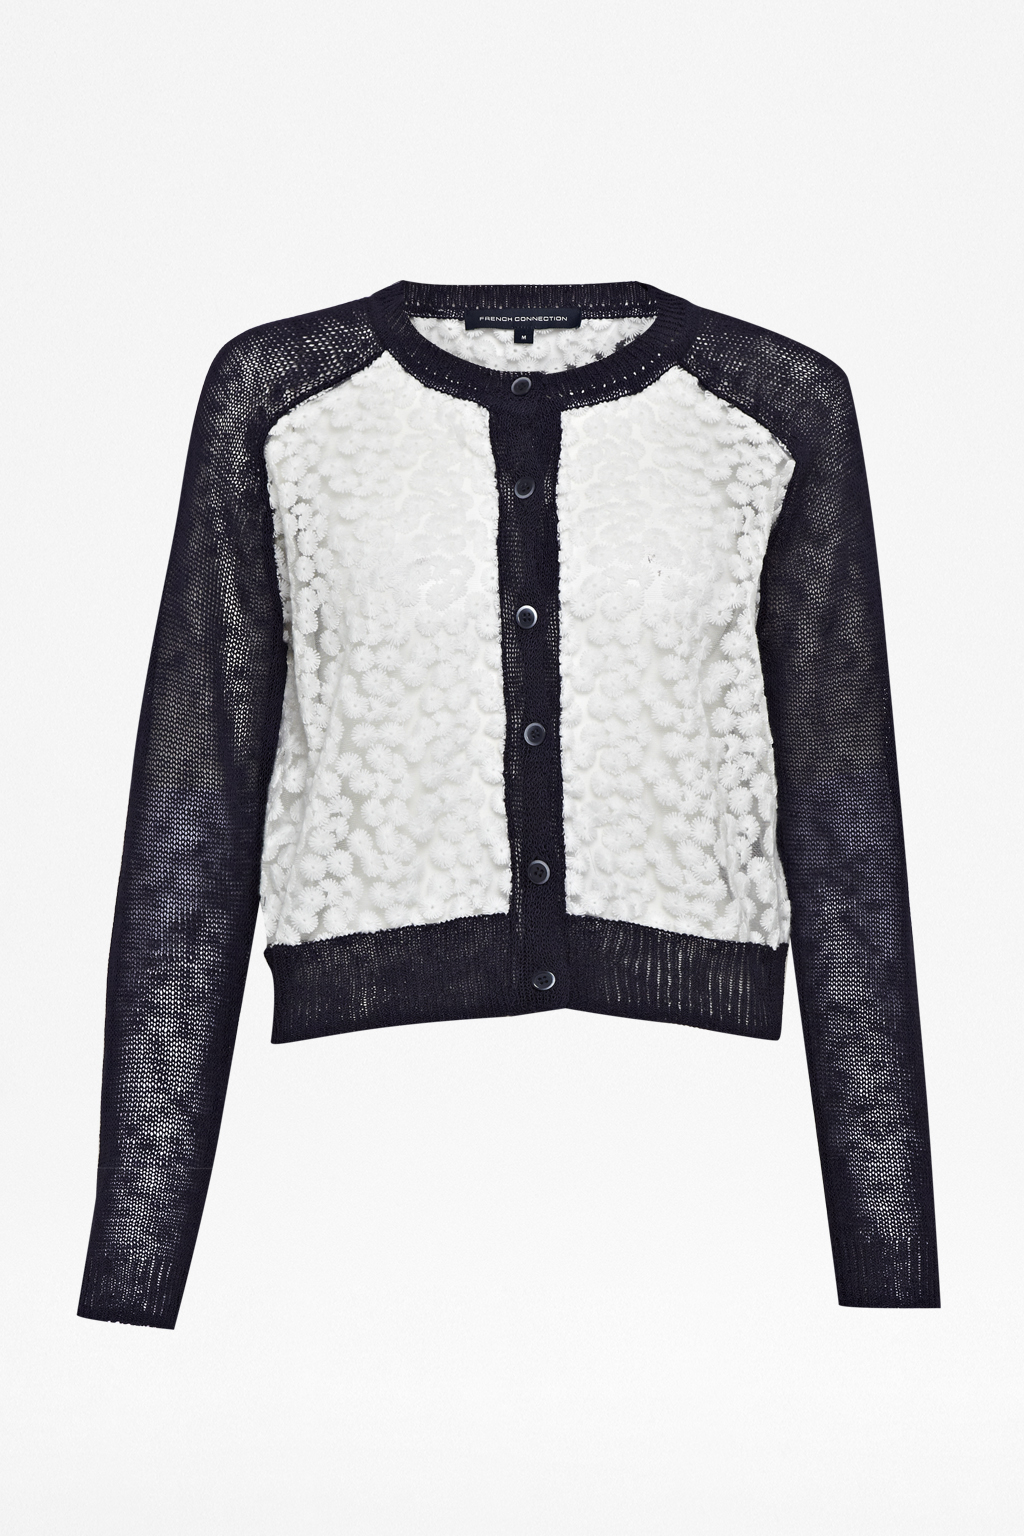 French connection Laila Lace Cropped Cardigan in White   Lyst